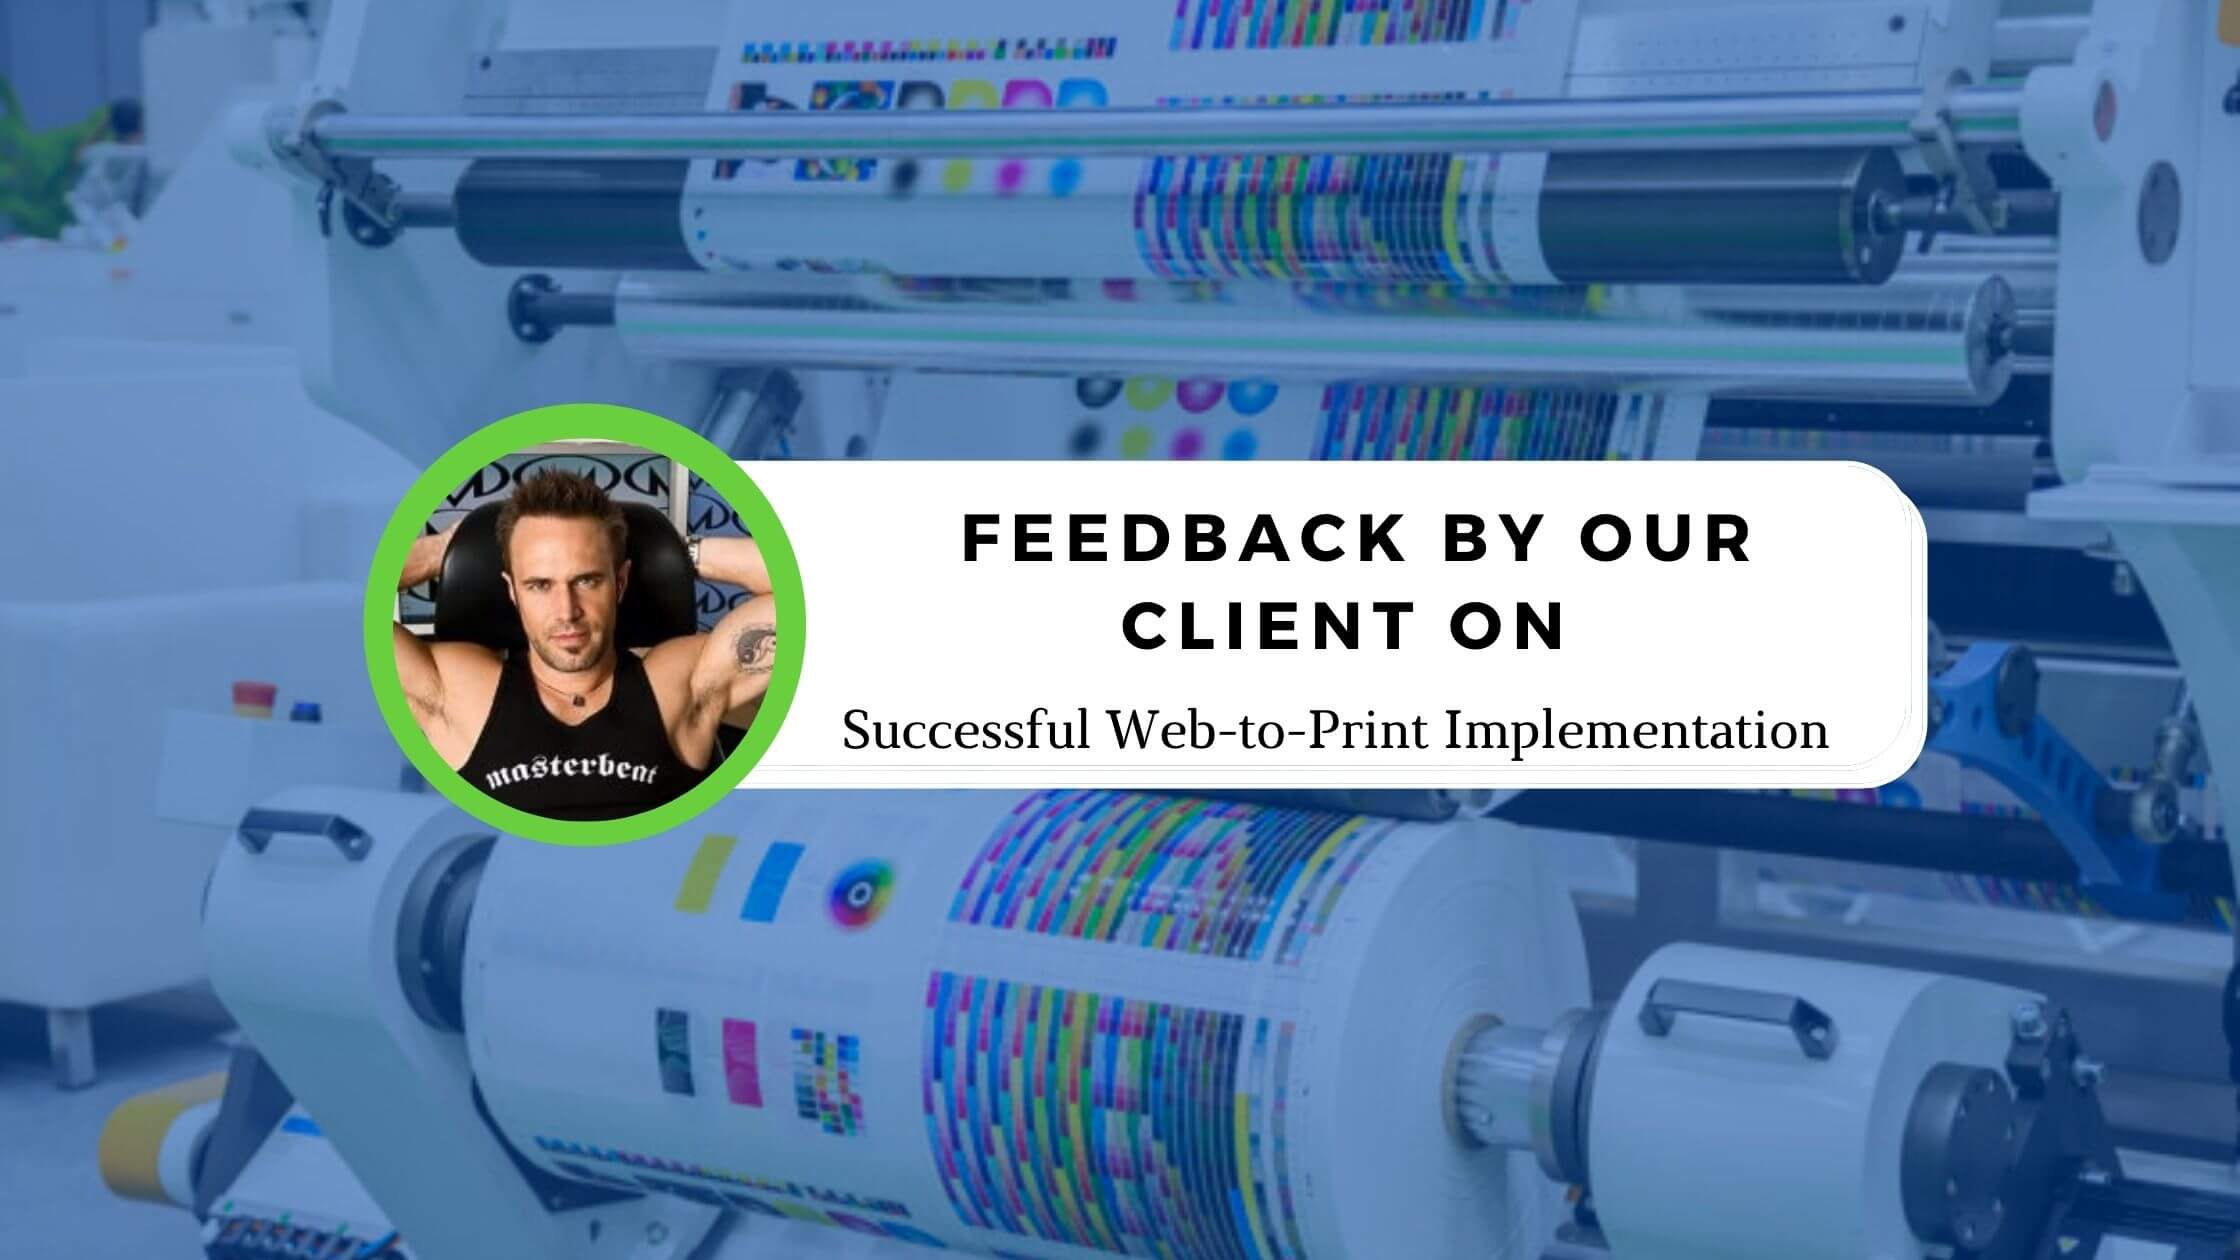 Feedback By Our Client on Successful Web-to-Print Implementation